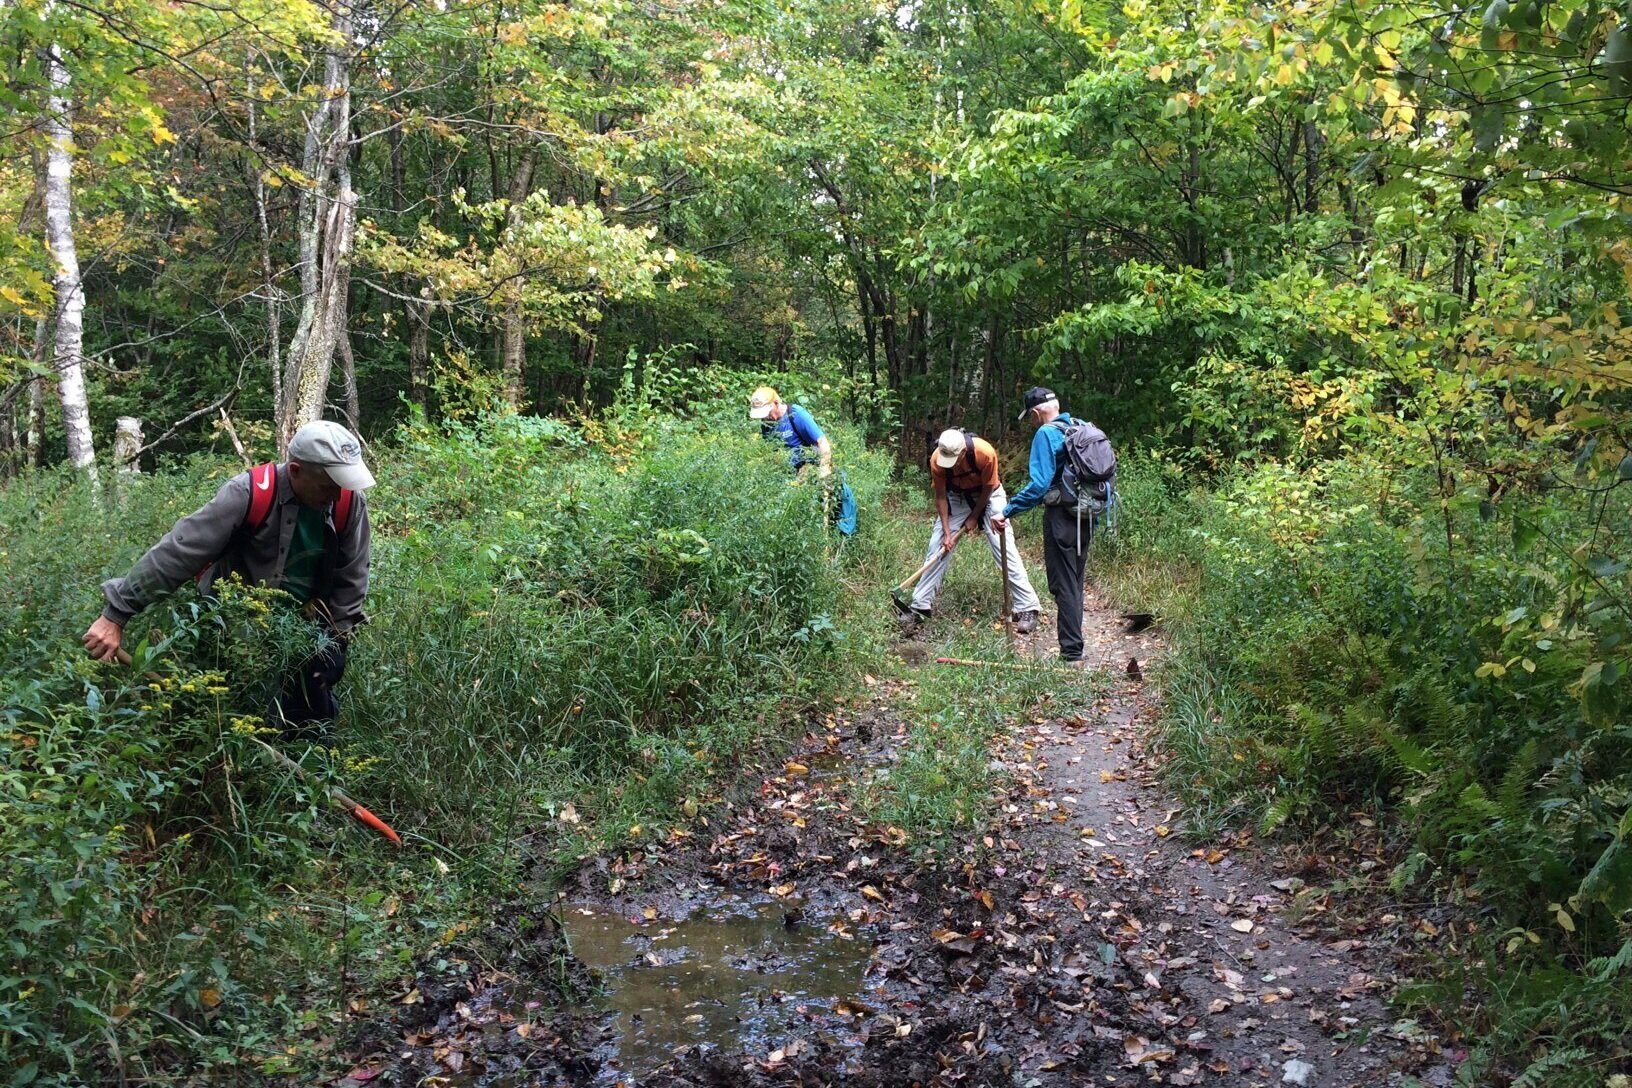 """""""Hoe and Shovel Day"""": Water bar repair on the TCT on 9/26. Many thanks to our trail stewards!"""